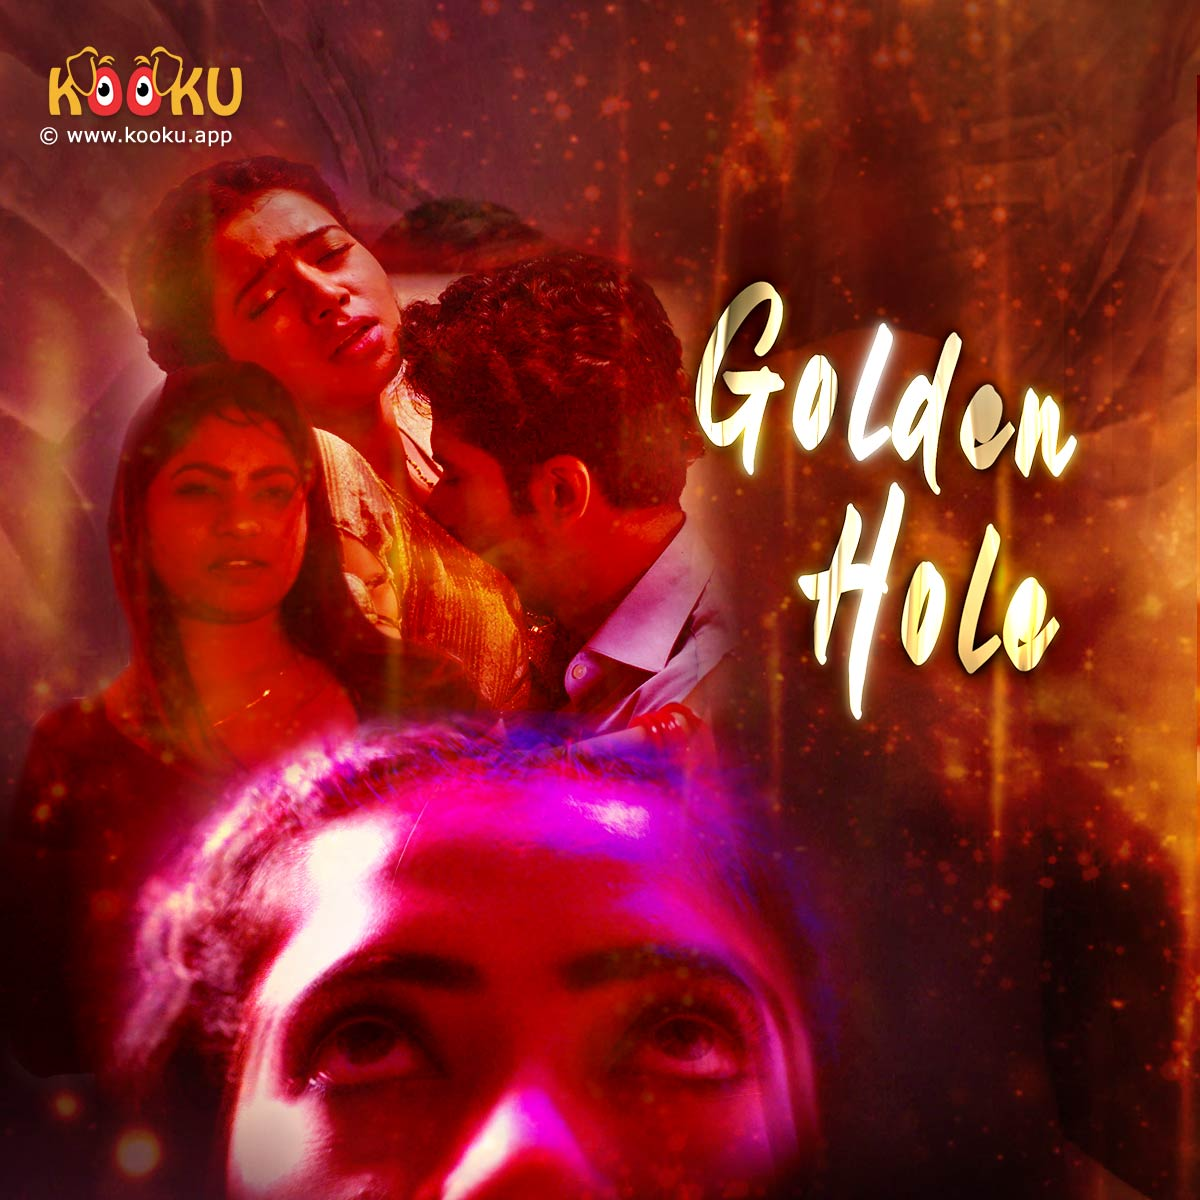 Golden Hole S01 2020 Hindi Kooku App Web Series Official Teaser 720p HDRip 10MB Download